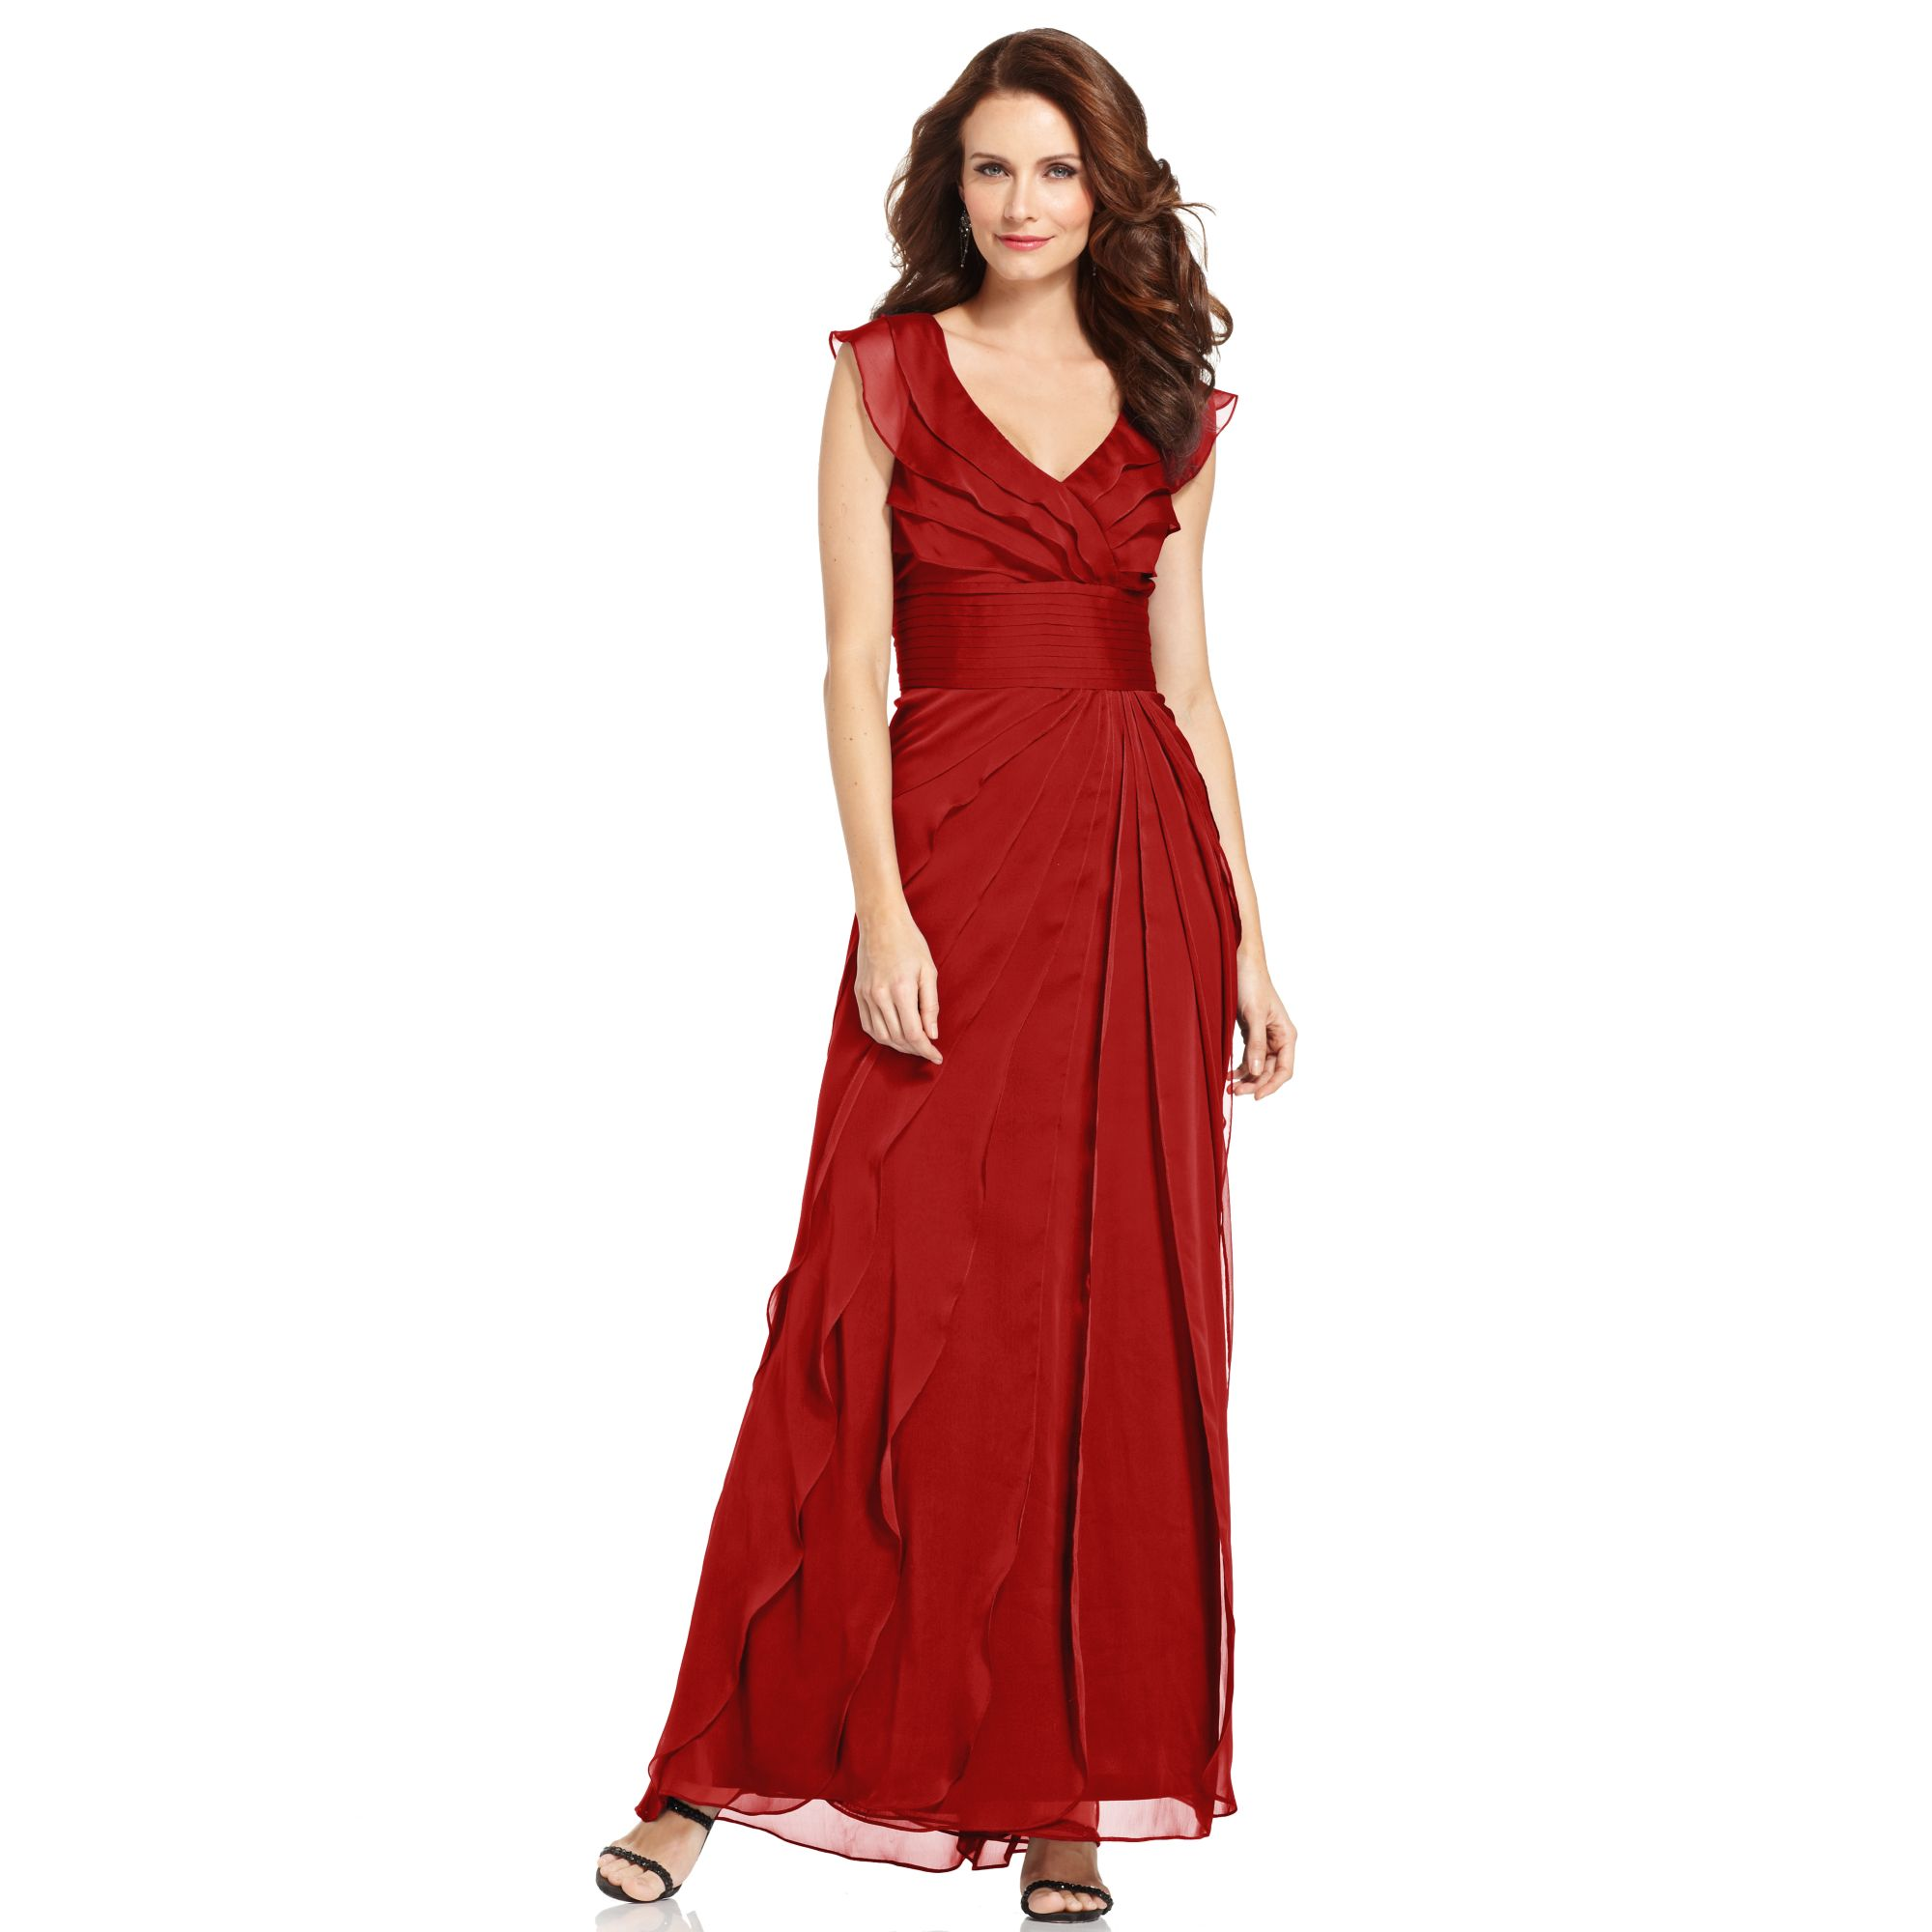 Adrianna Papell Tiered Evening Dress in Red  Lyst